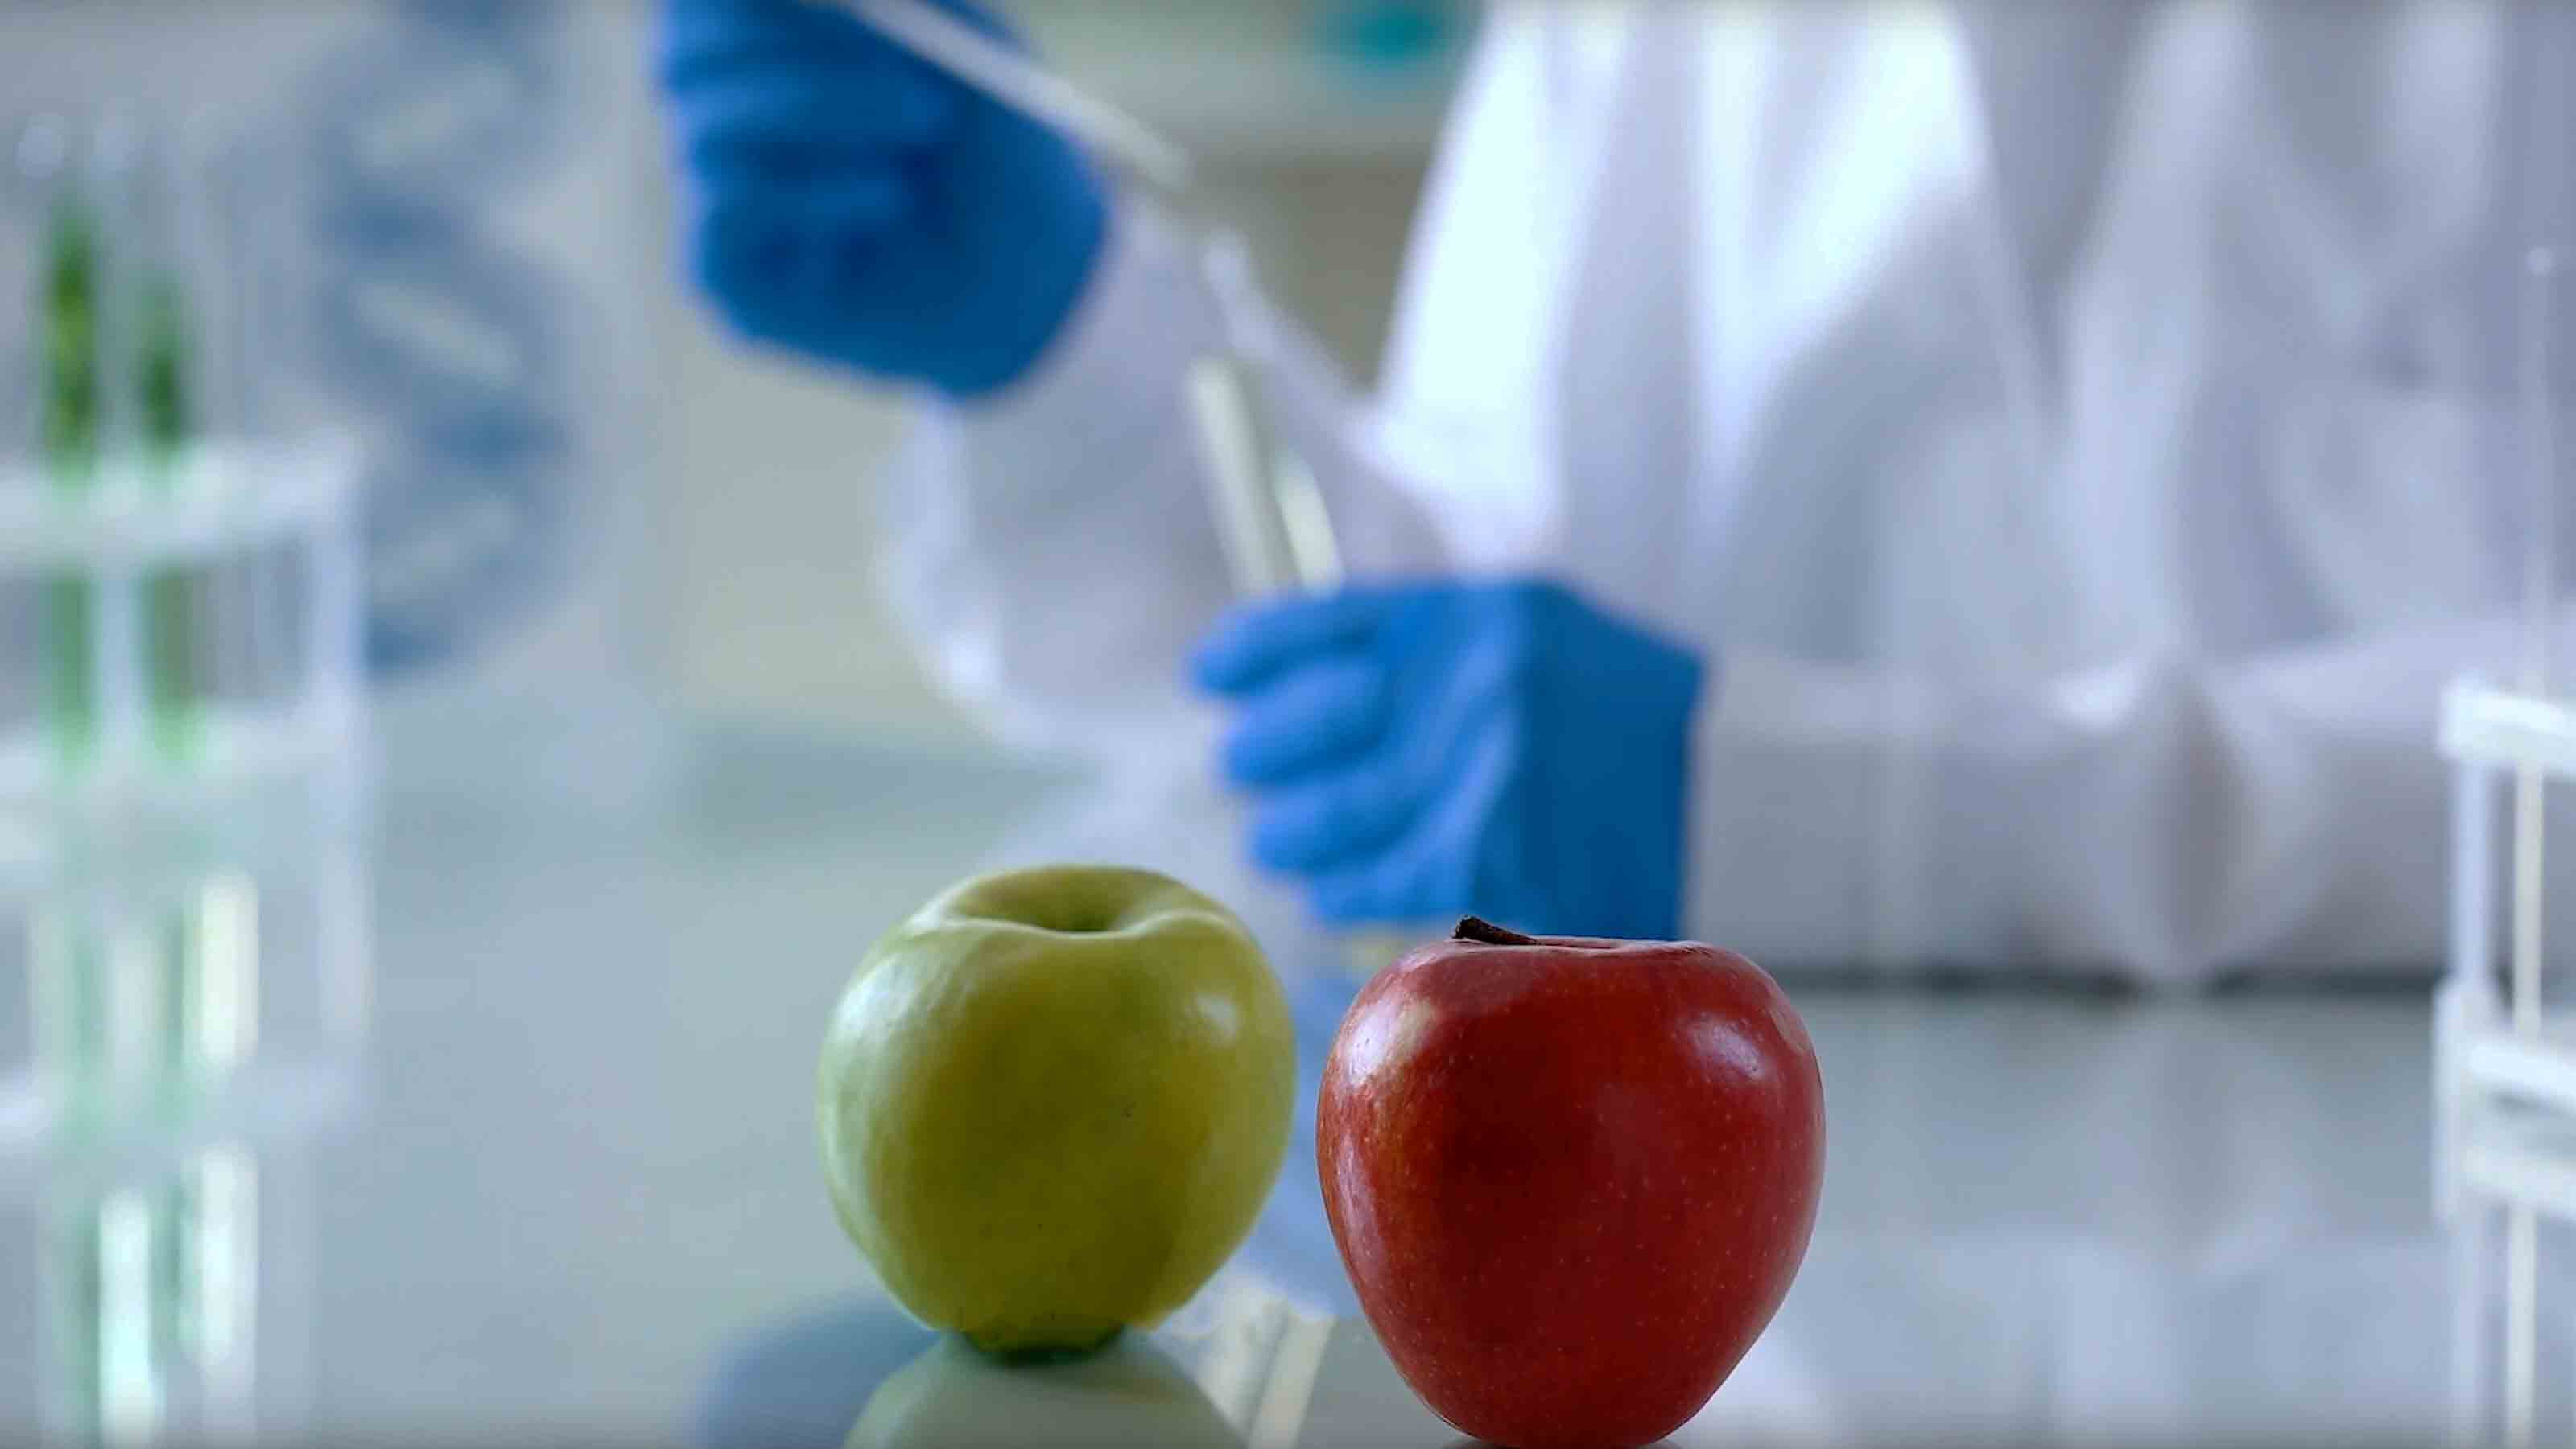 Apples in the laboratory